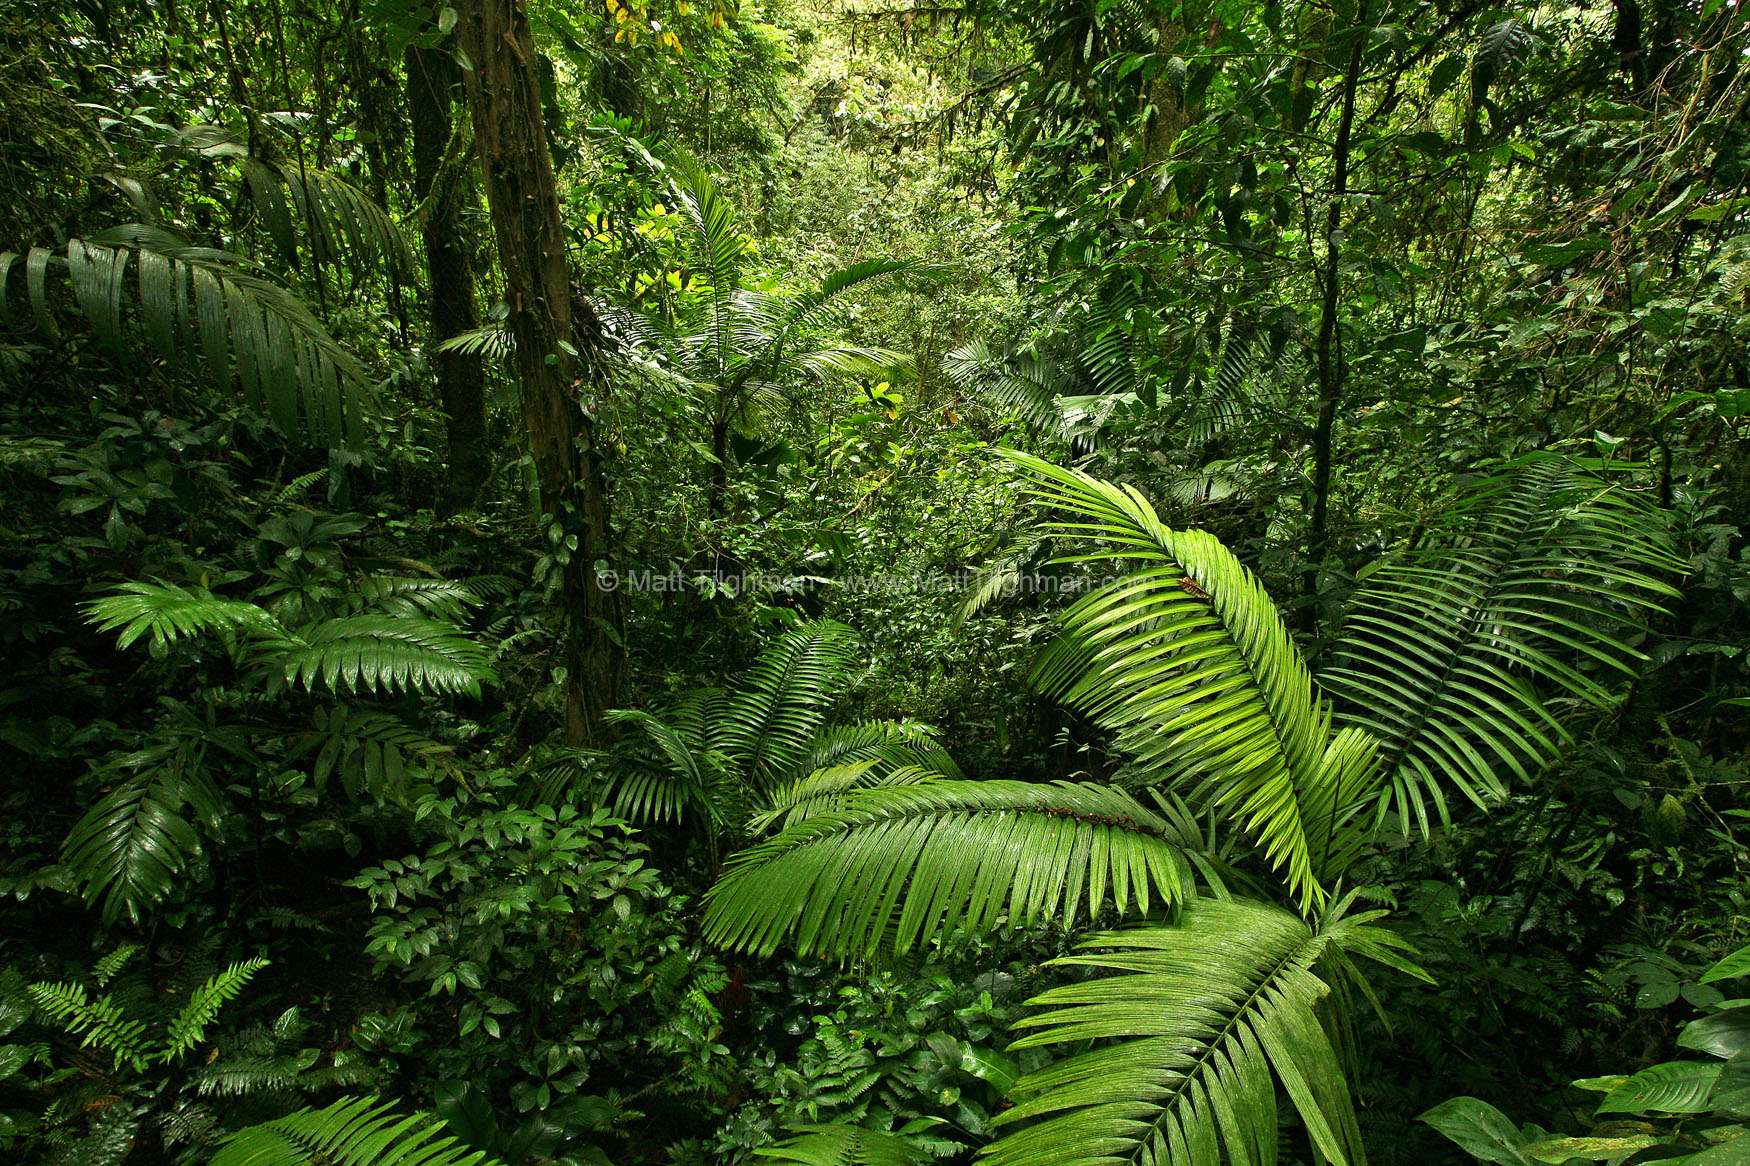 Fine art stock landscape photograph from Costa Rica's dense tropical rain forest. The palms, ferns, and trees all sing in unison, in a united shade of green.